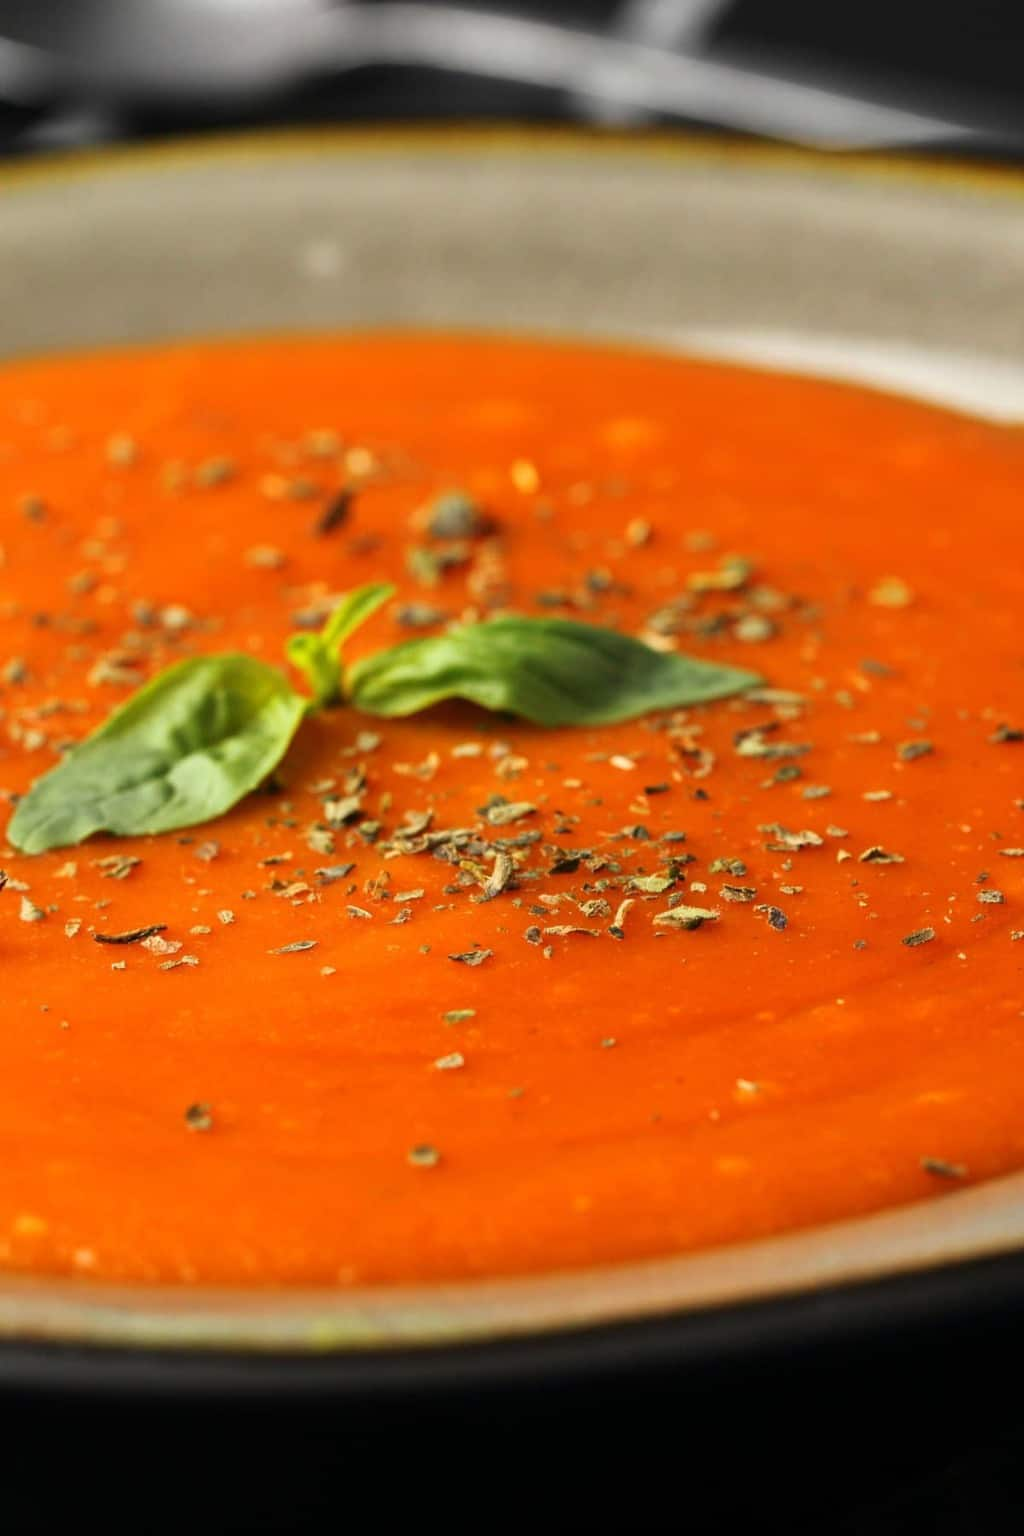 Vegan tomato soup topped with dried herbs and fresh basil in a grey stone bowl.